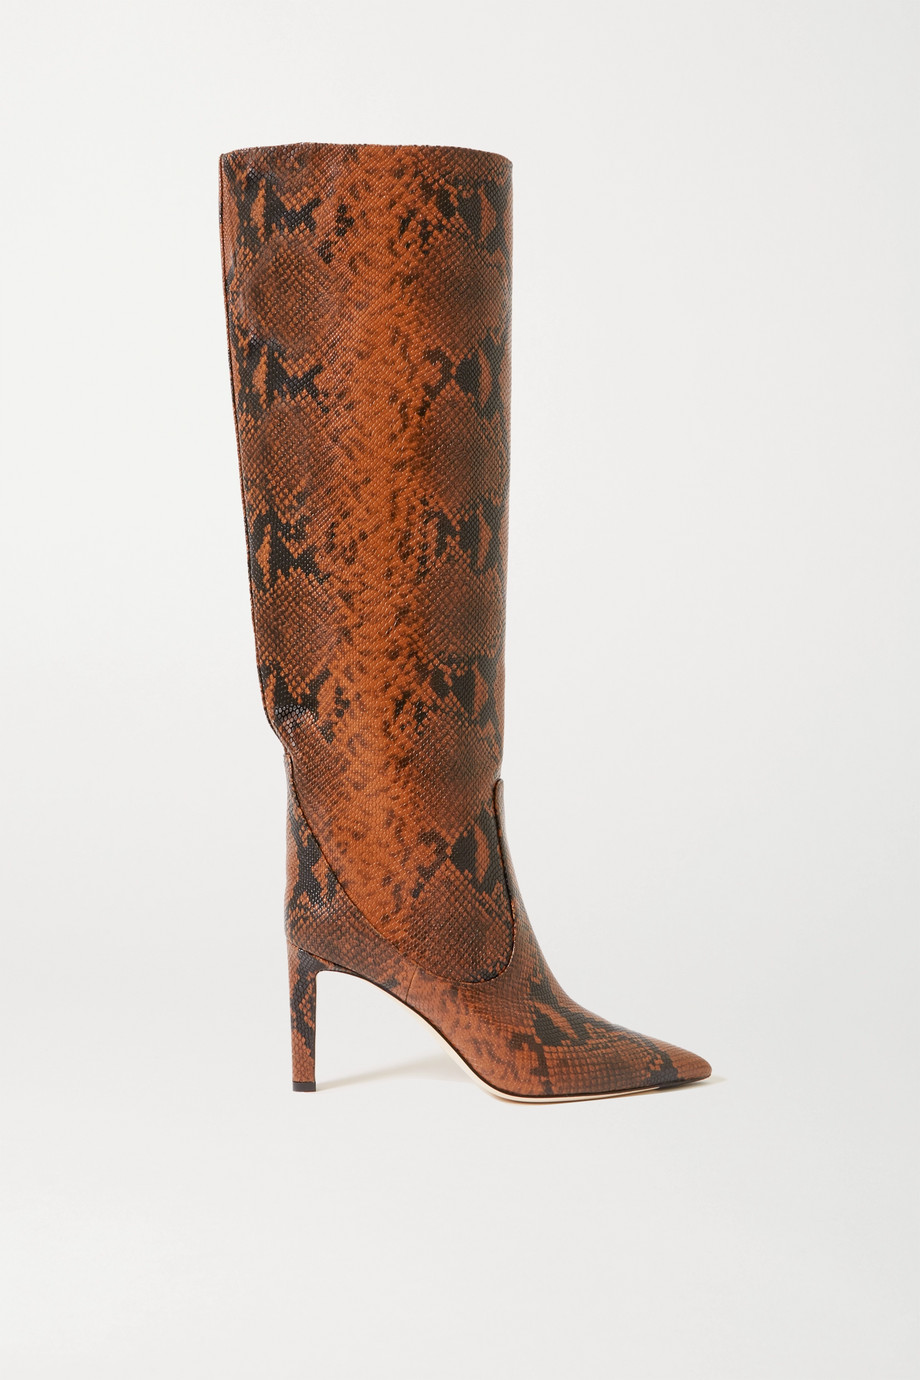 JIMMY CHOO Mavis 85 snake-print leather knee boots